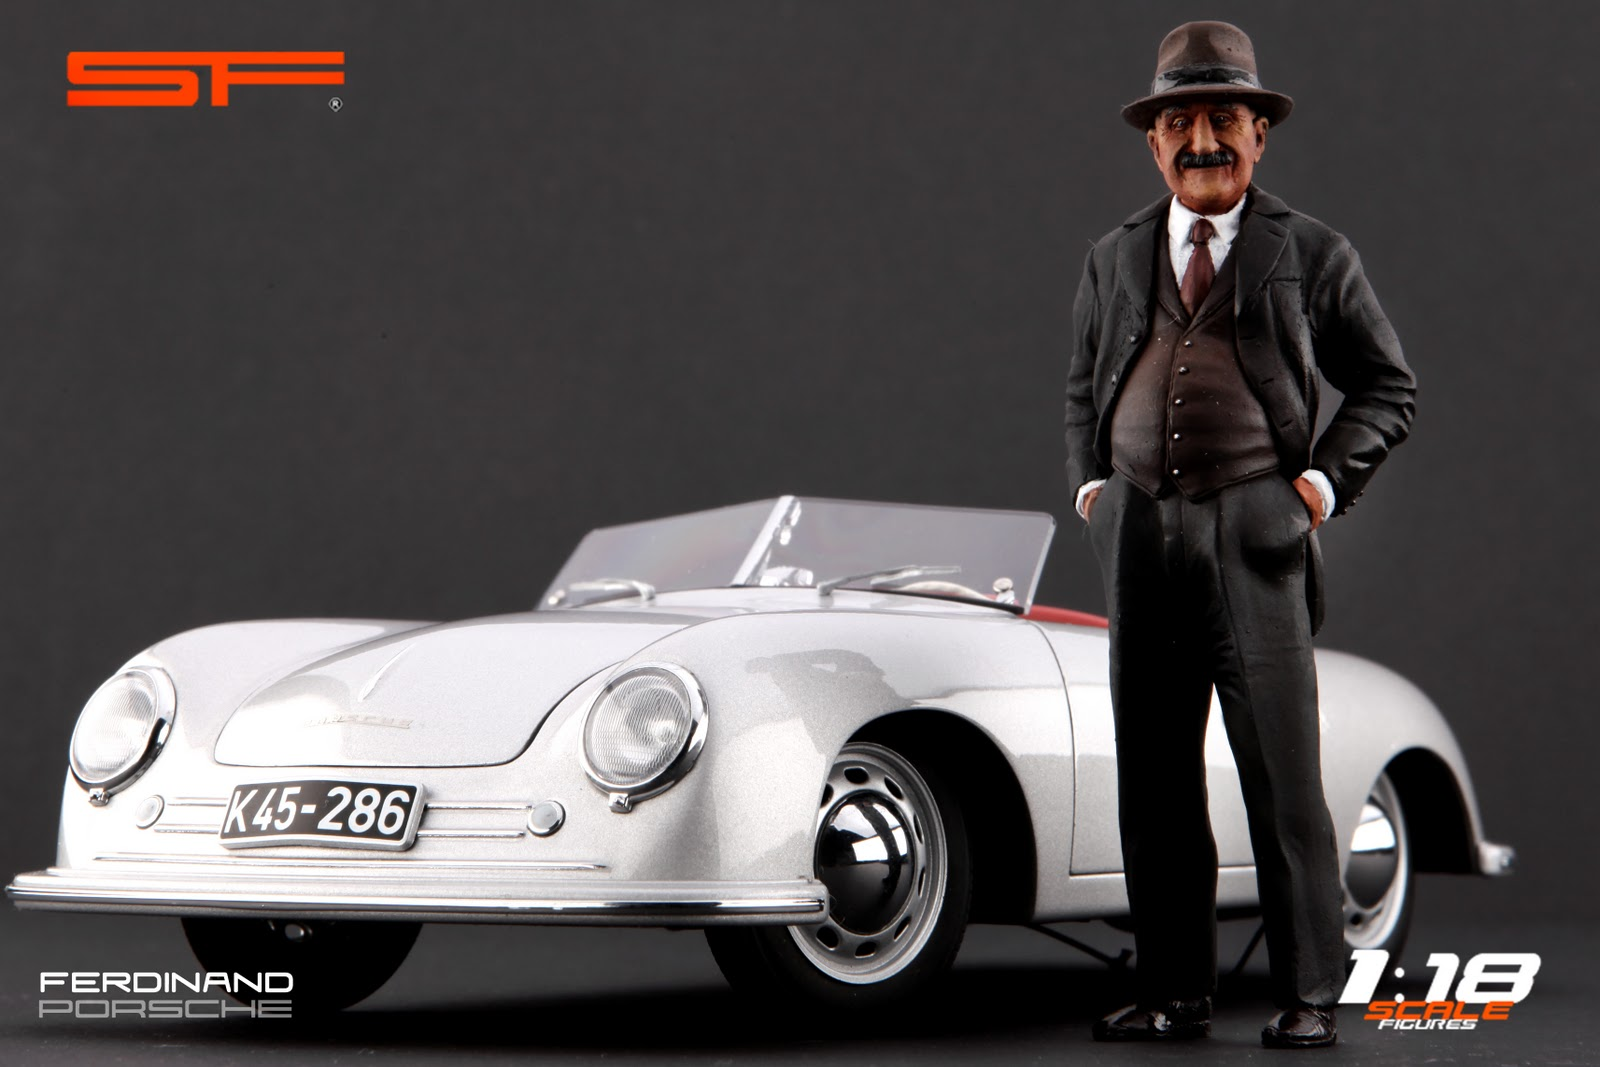 ScaleFigures: Ferdinand Porsche 1:18 Hat on chevy electric car, fiat electric car, lohner-porsche electric car, volkswagen electric car, gordon murray electric car, infiniti electric car, edison electric car, ge electric car, 1900 electric car, tvr electric car, cadillac electric car, the first electric car, suzuki electric car, ford electric car, tesla electric car, gmc electric car, smart electric car, wheel hub motor electric car, renault electric car, dodge electric car,